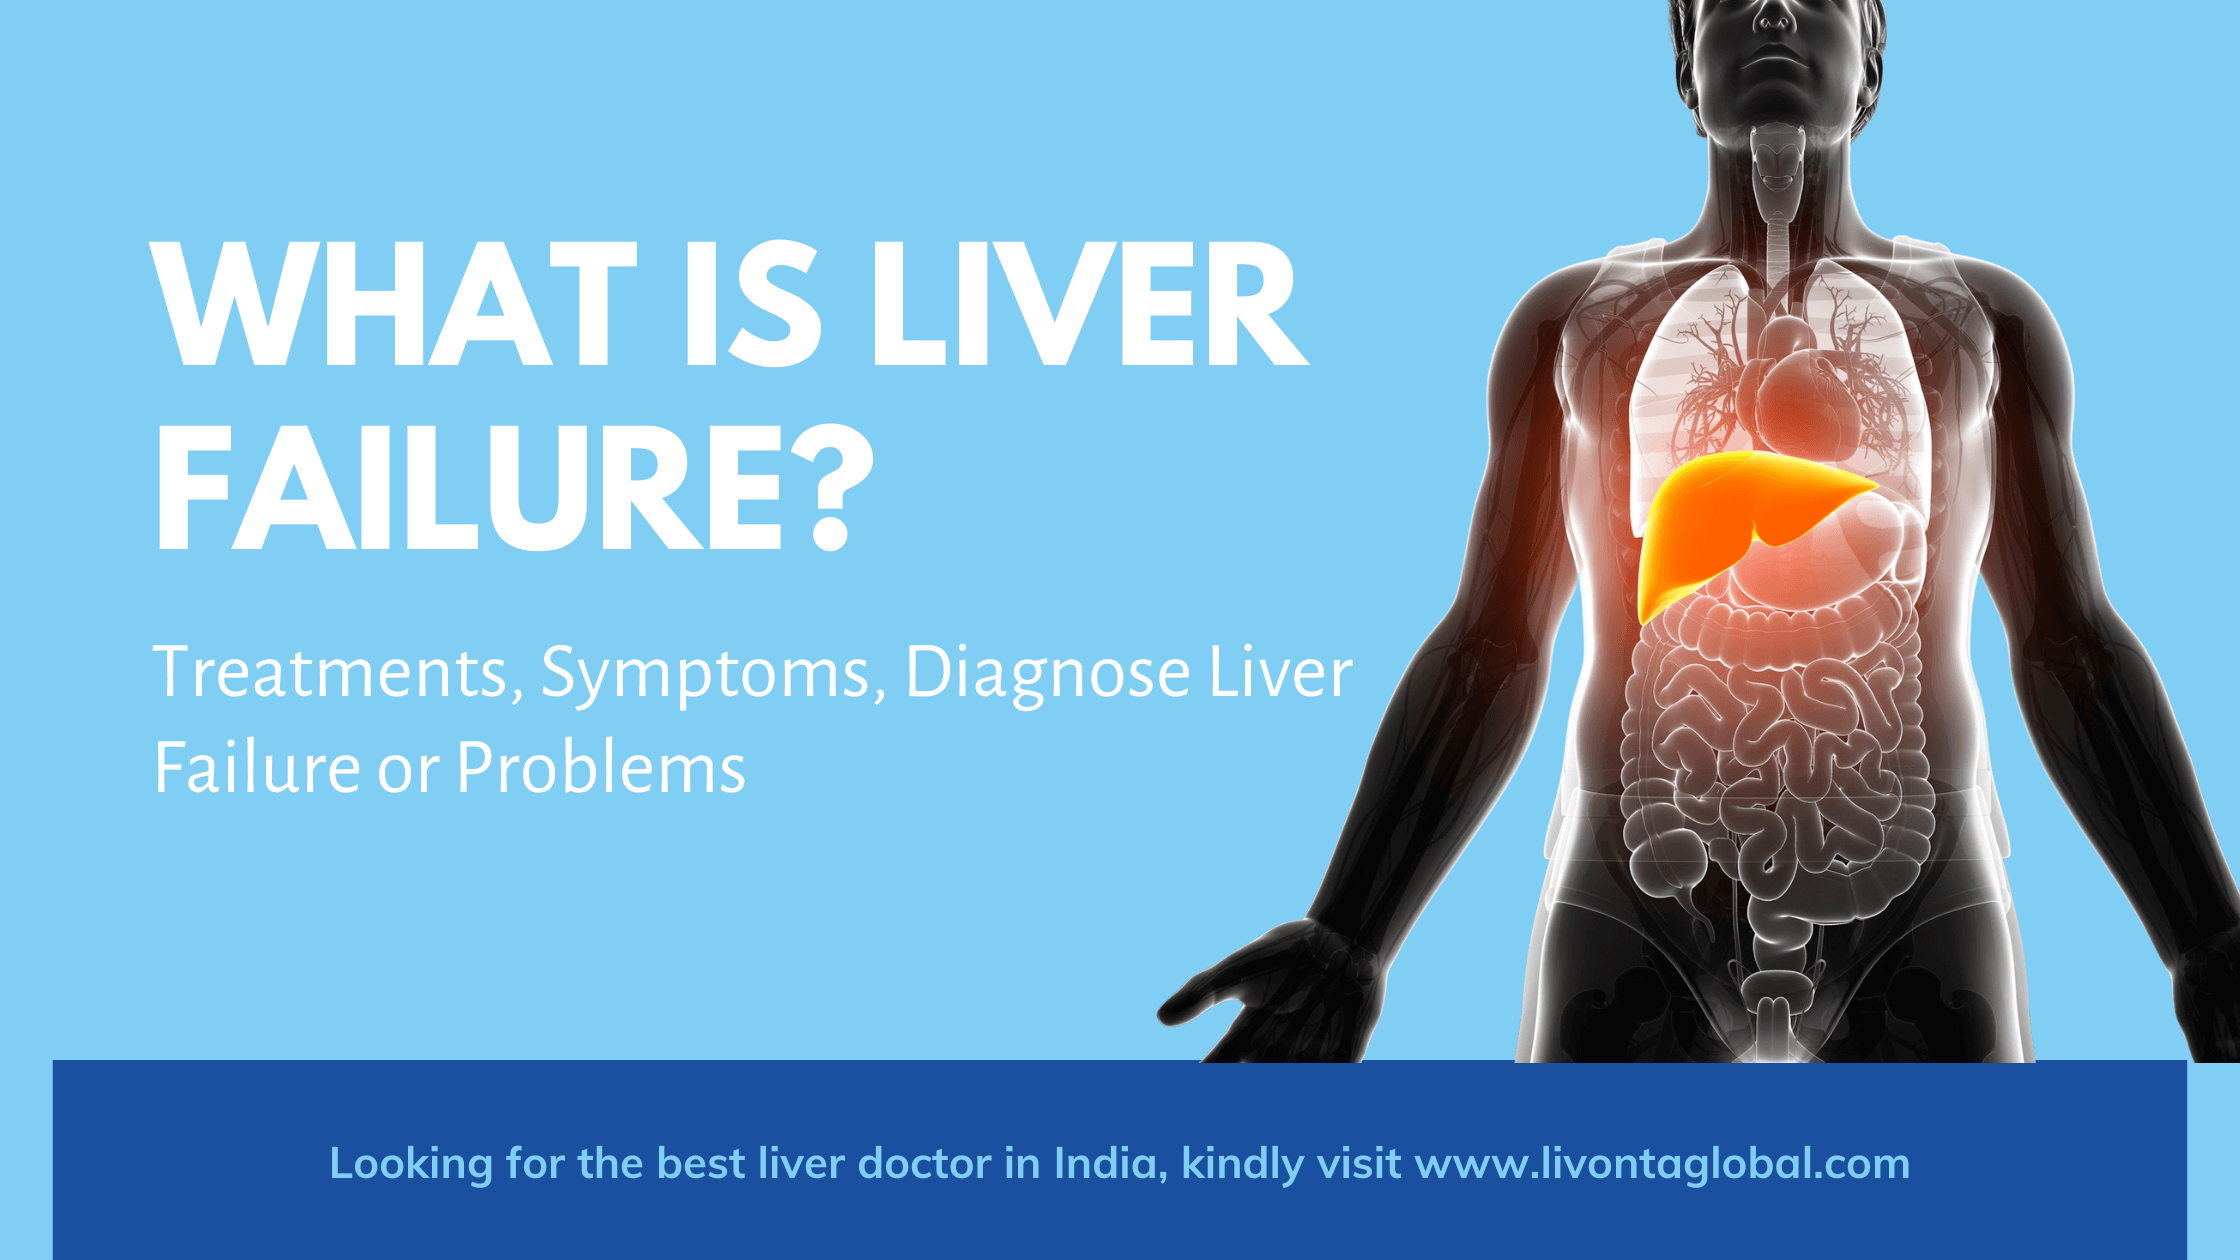 liver failure treatments